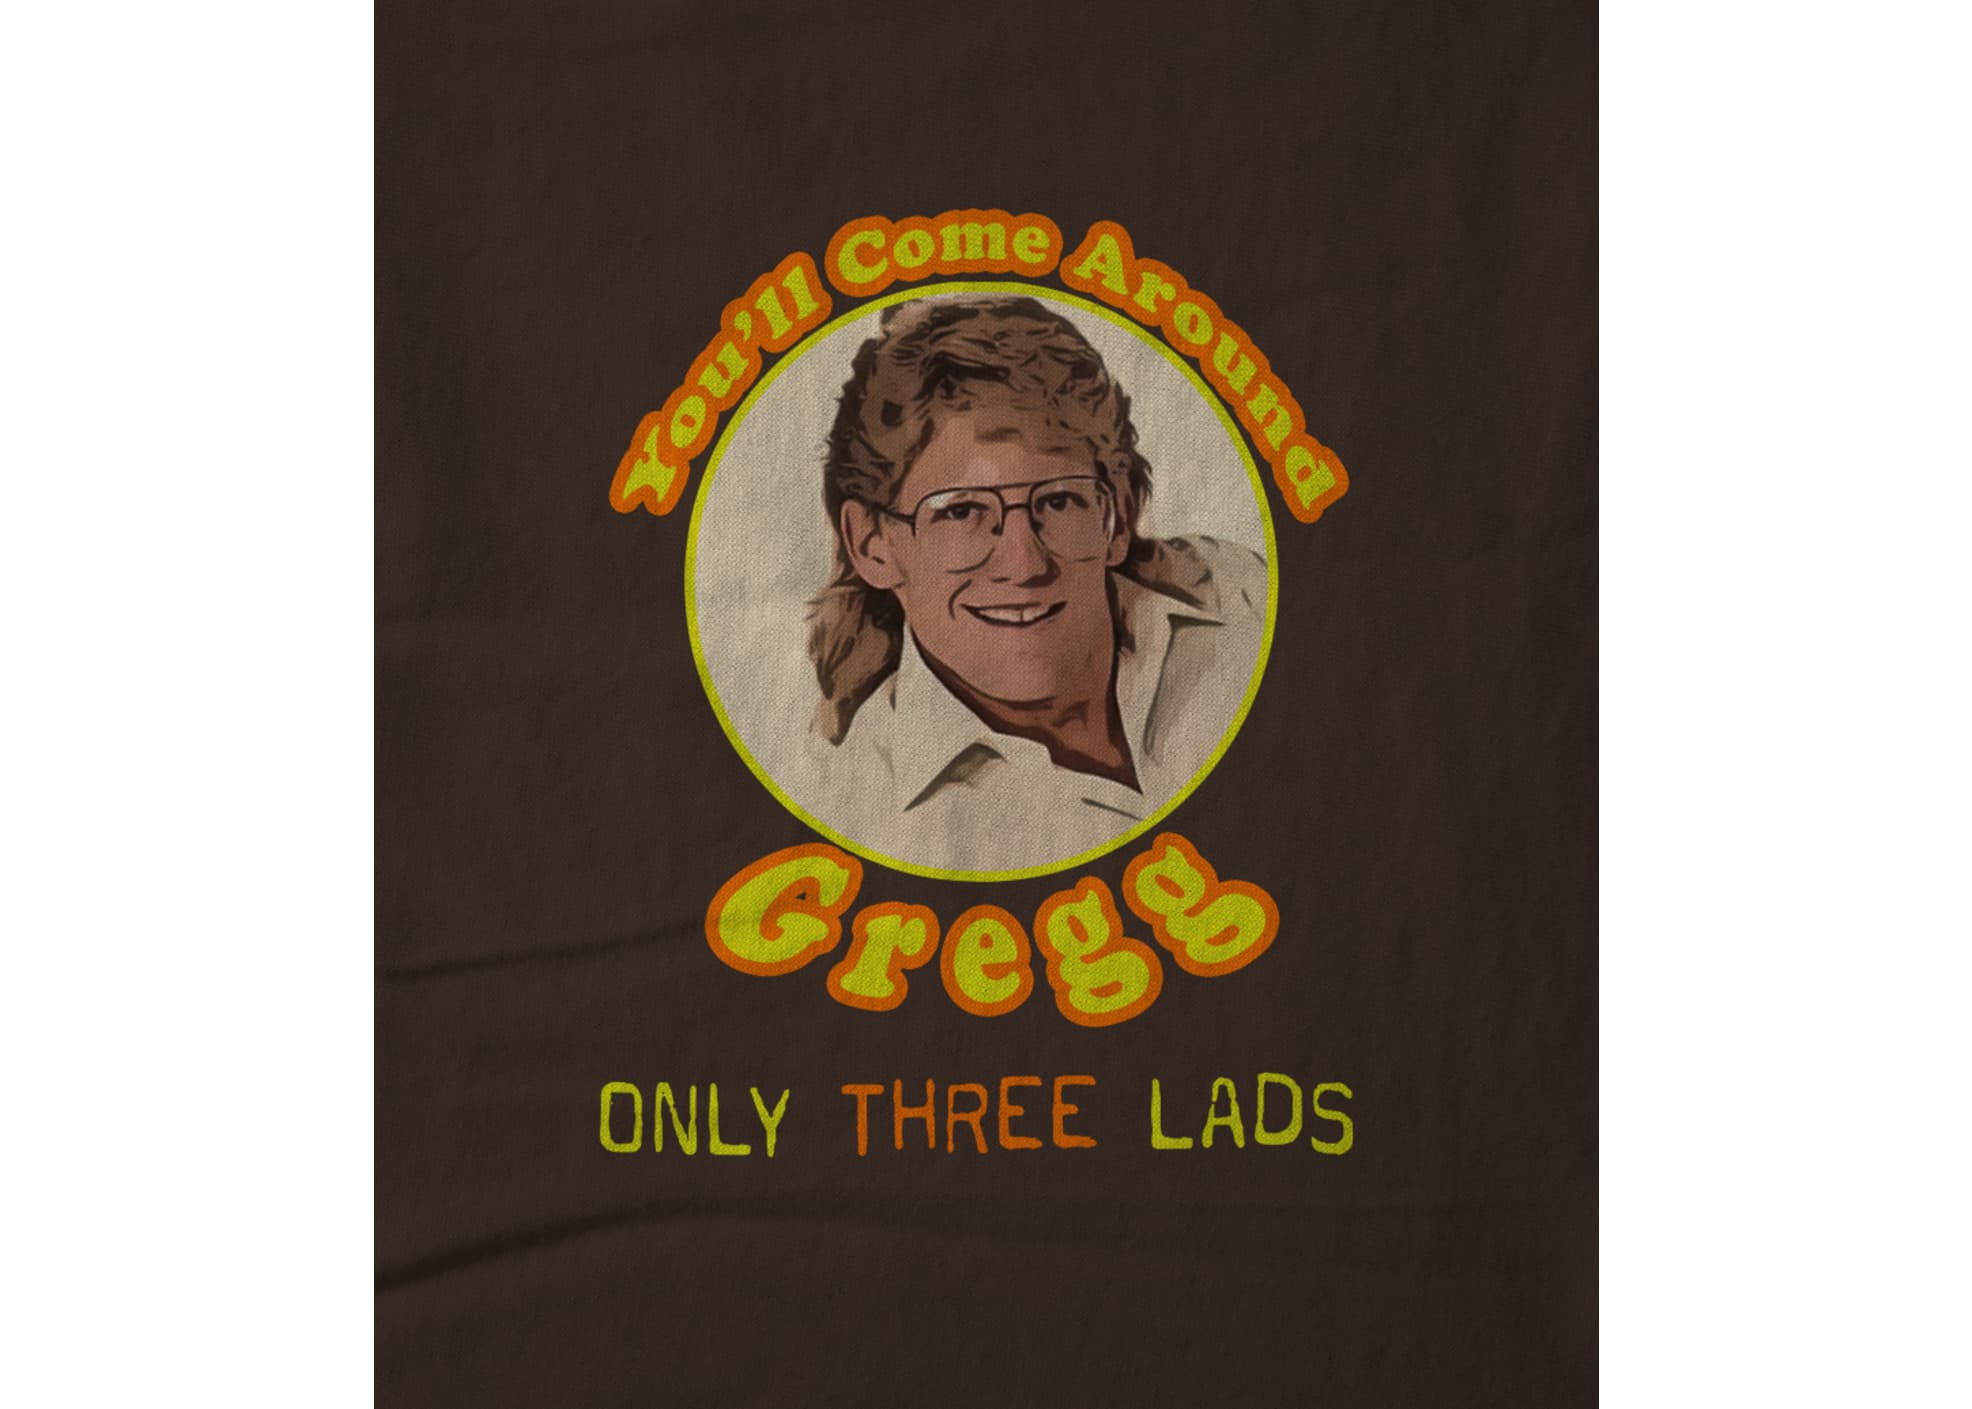 Only three lads you ll come around gregg 1605736382